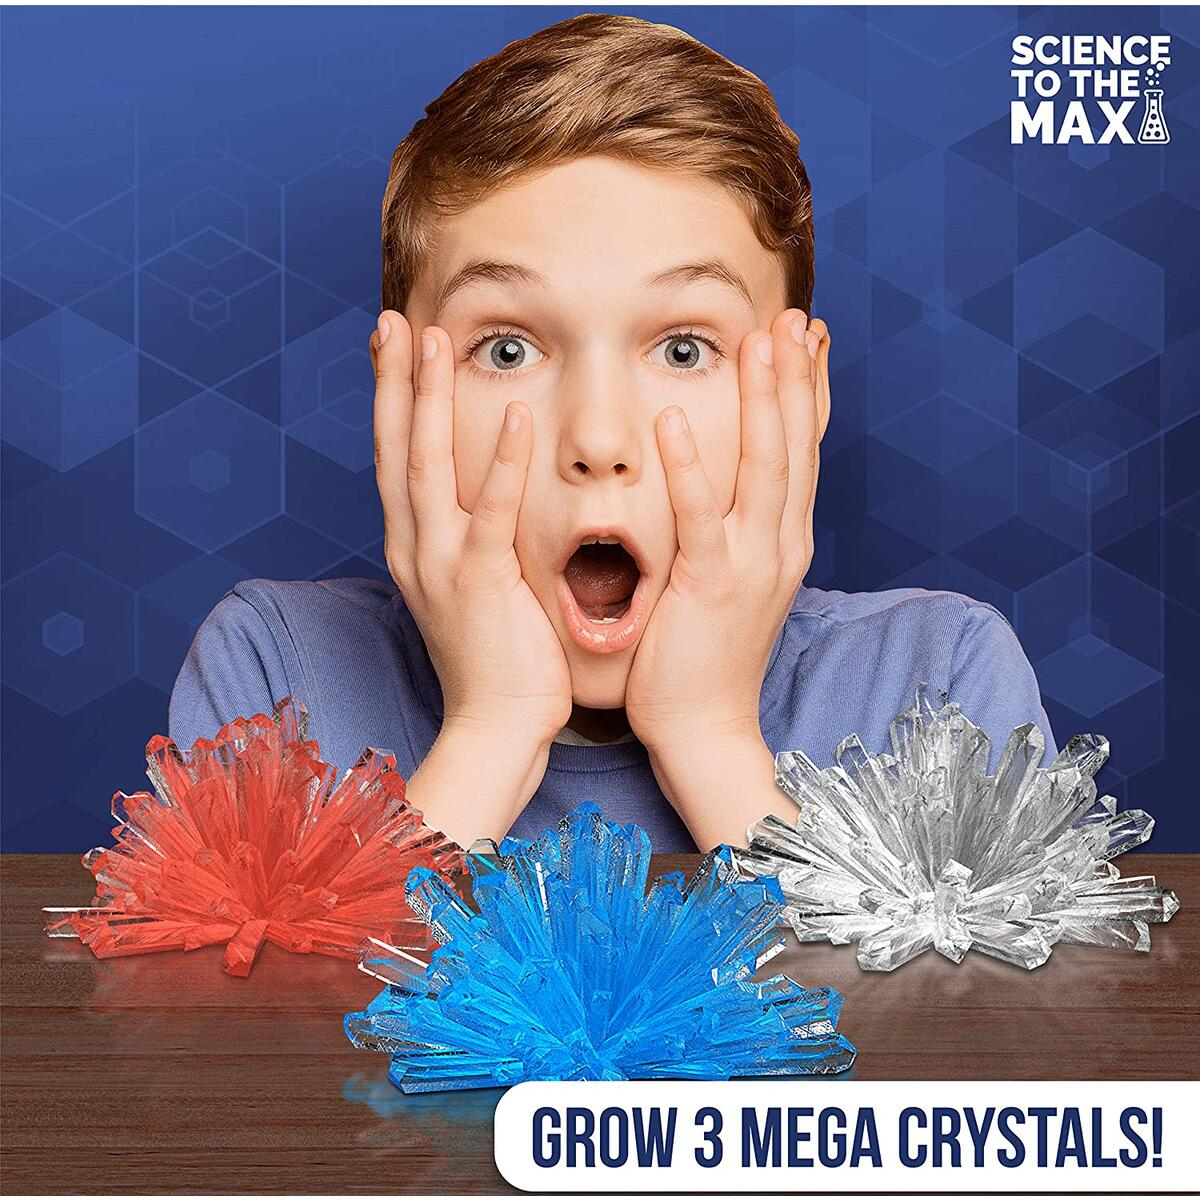 Crystal Growing Kit for Kids - 3 Display Colossal Crystals Domes